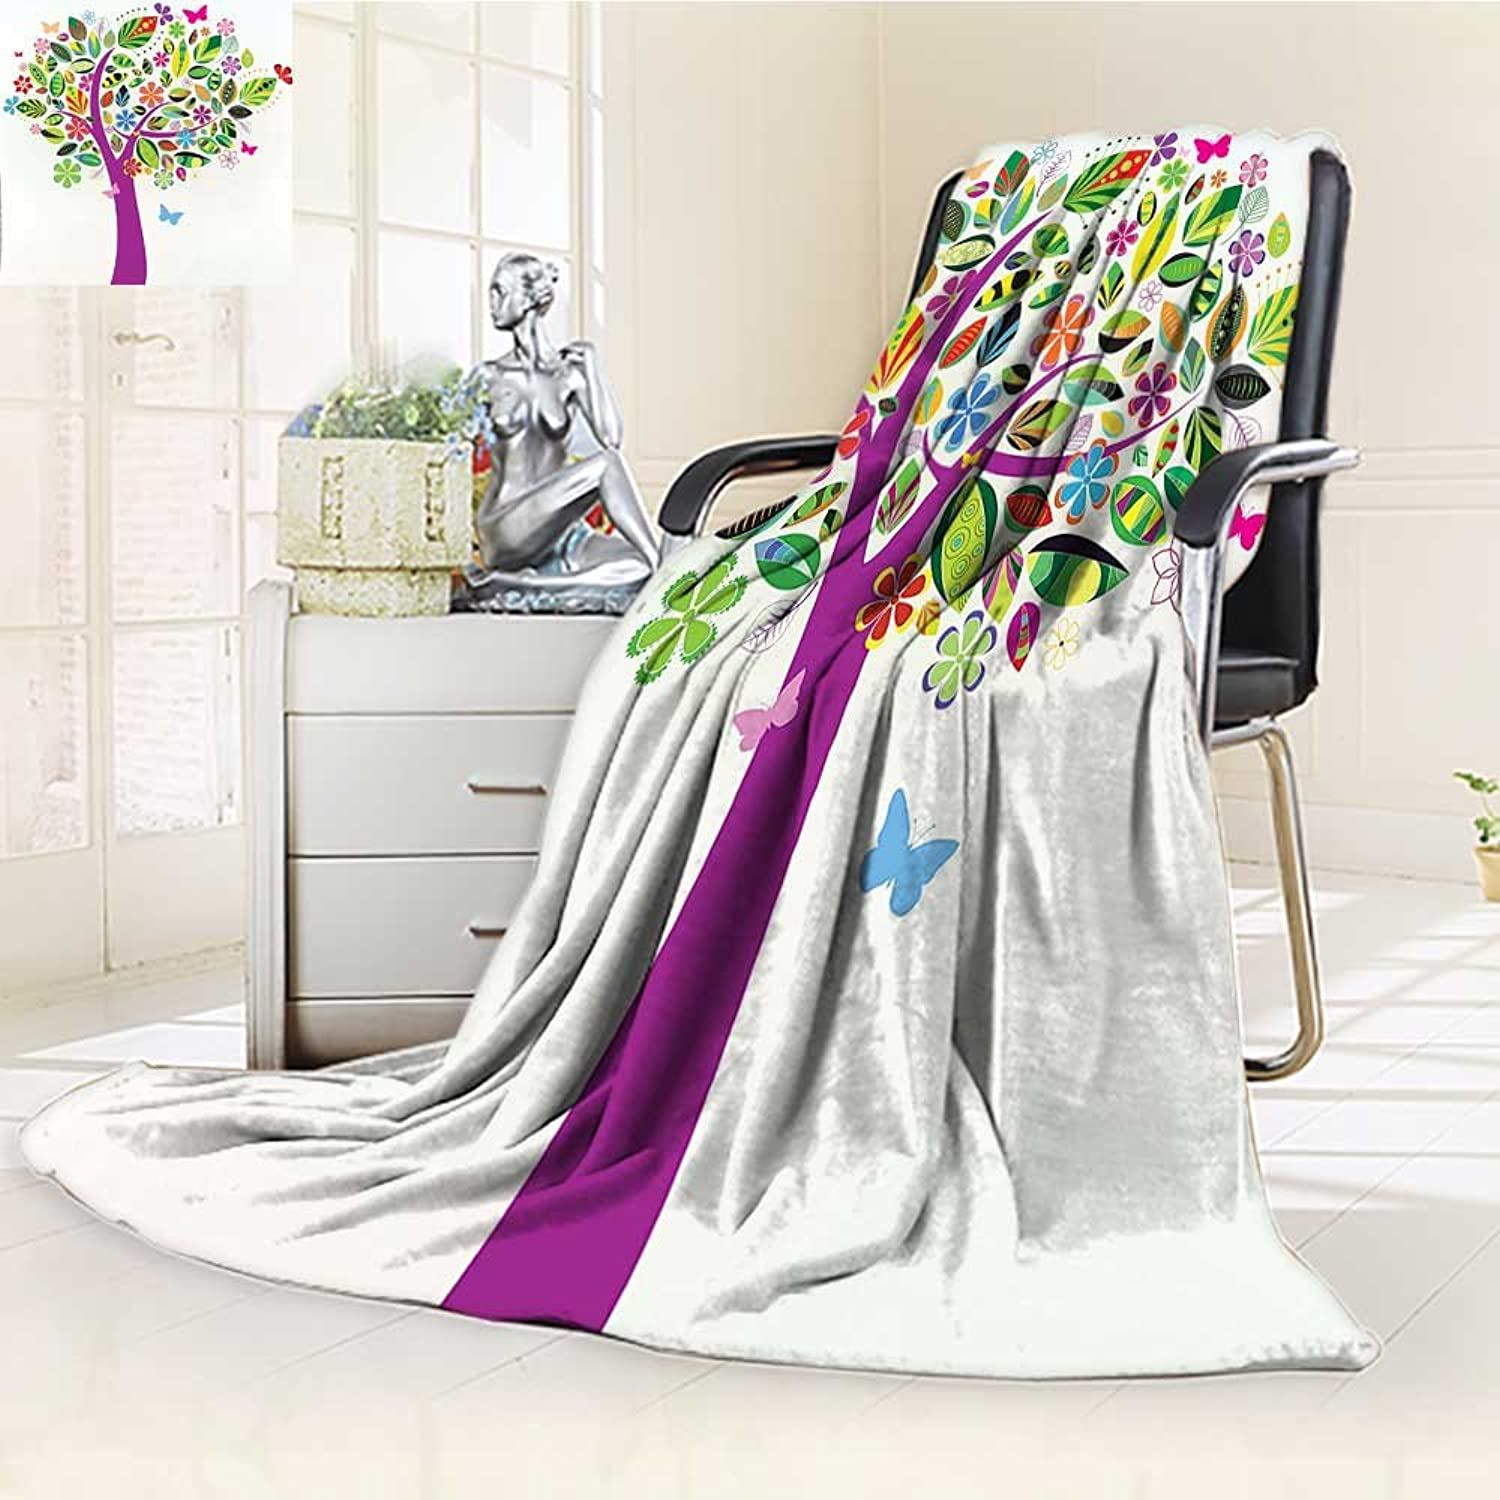 Digital Printing Duplex Printed Blanket Tree of Life Ornate Vibrant Floral Tree with Flying Butterflies Fresh colors Nature Home Multi Summer Quilt Comforter  W47 x H59